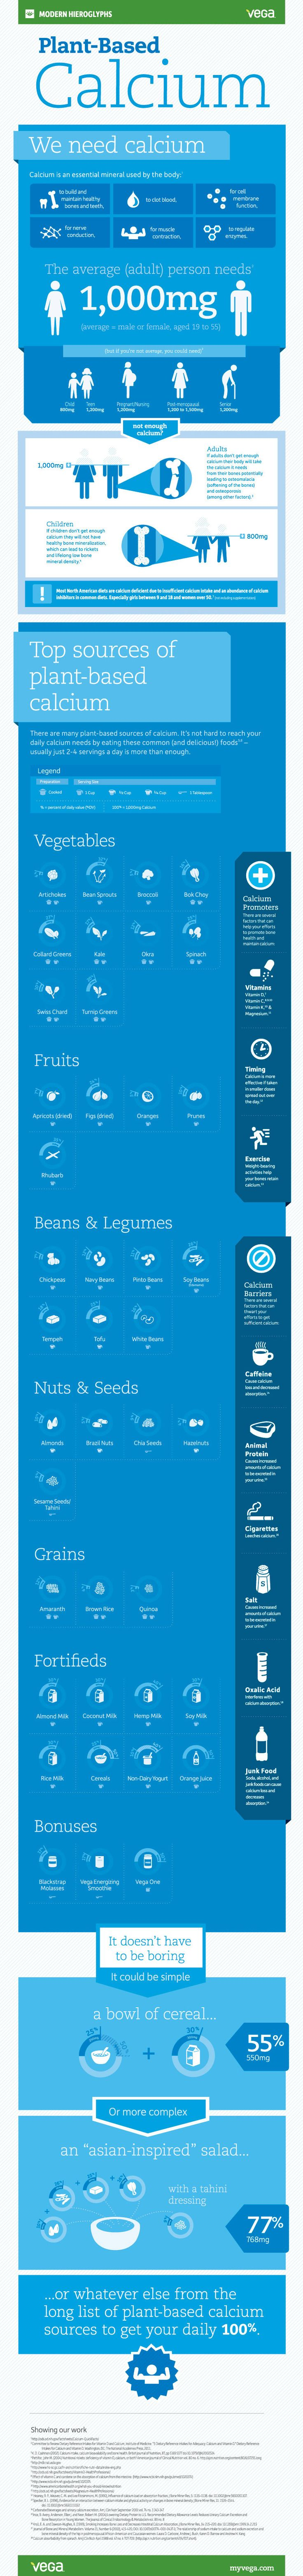 Plant Based Sources of Calcium Infographic